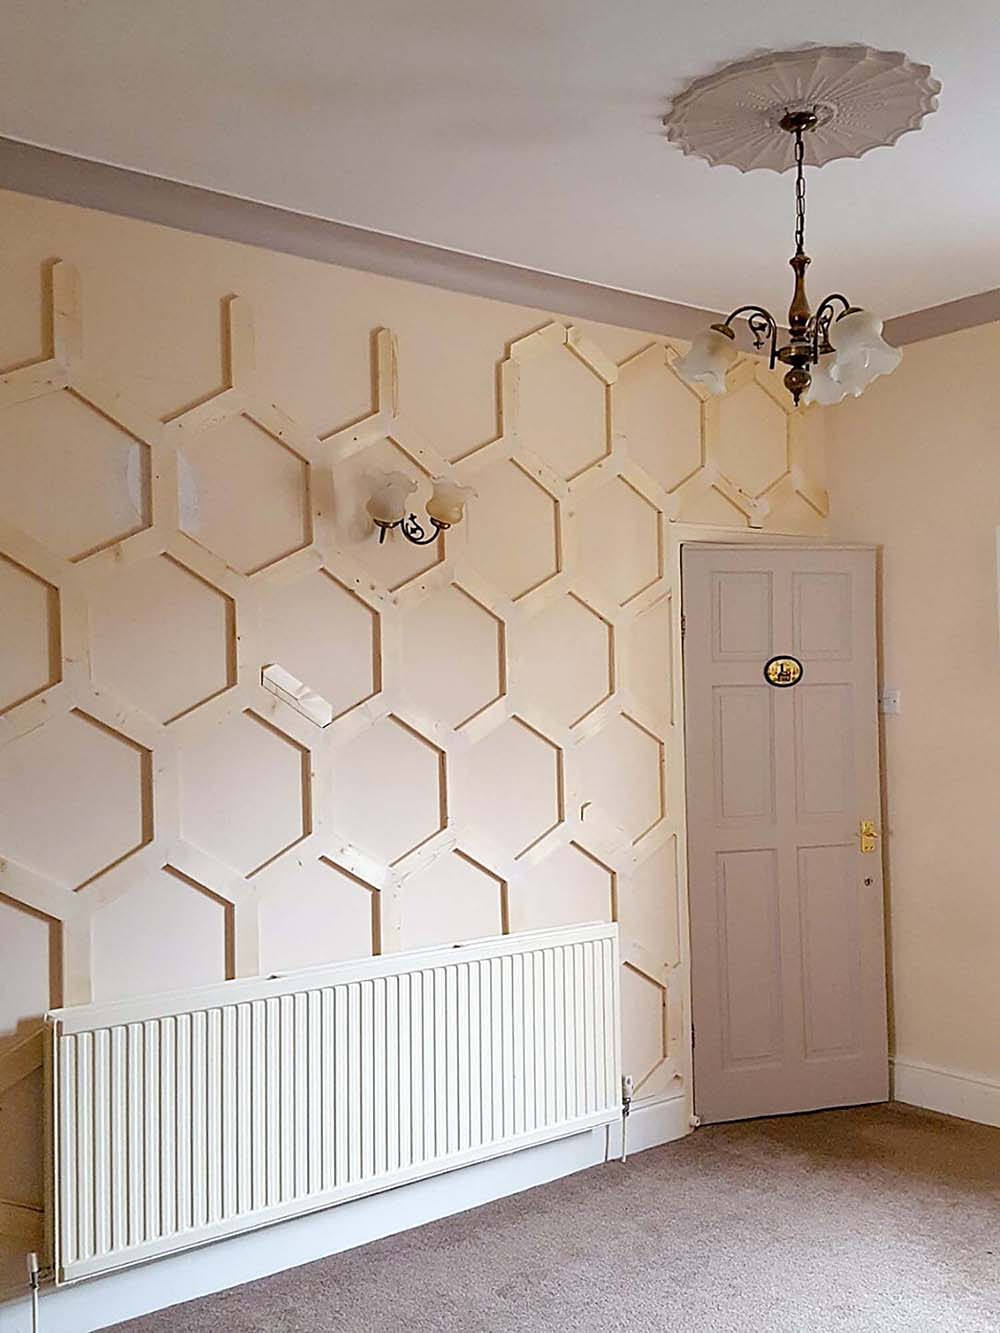 How to DIY a Hex Panelled Wall - WELL I GUESS THIS IS ...